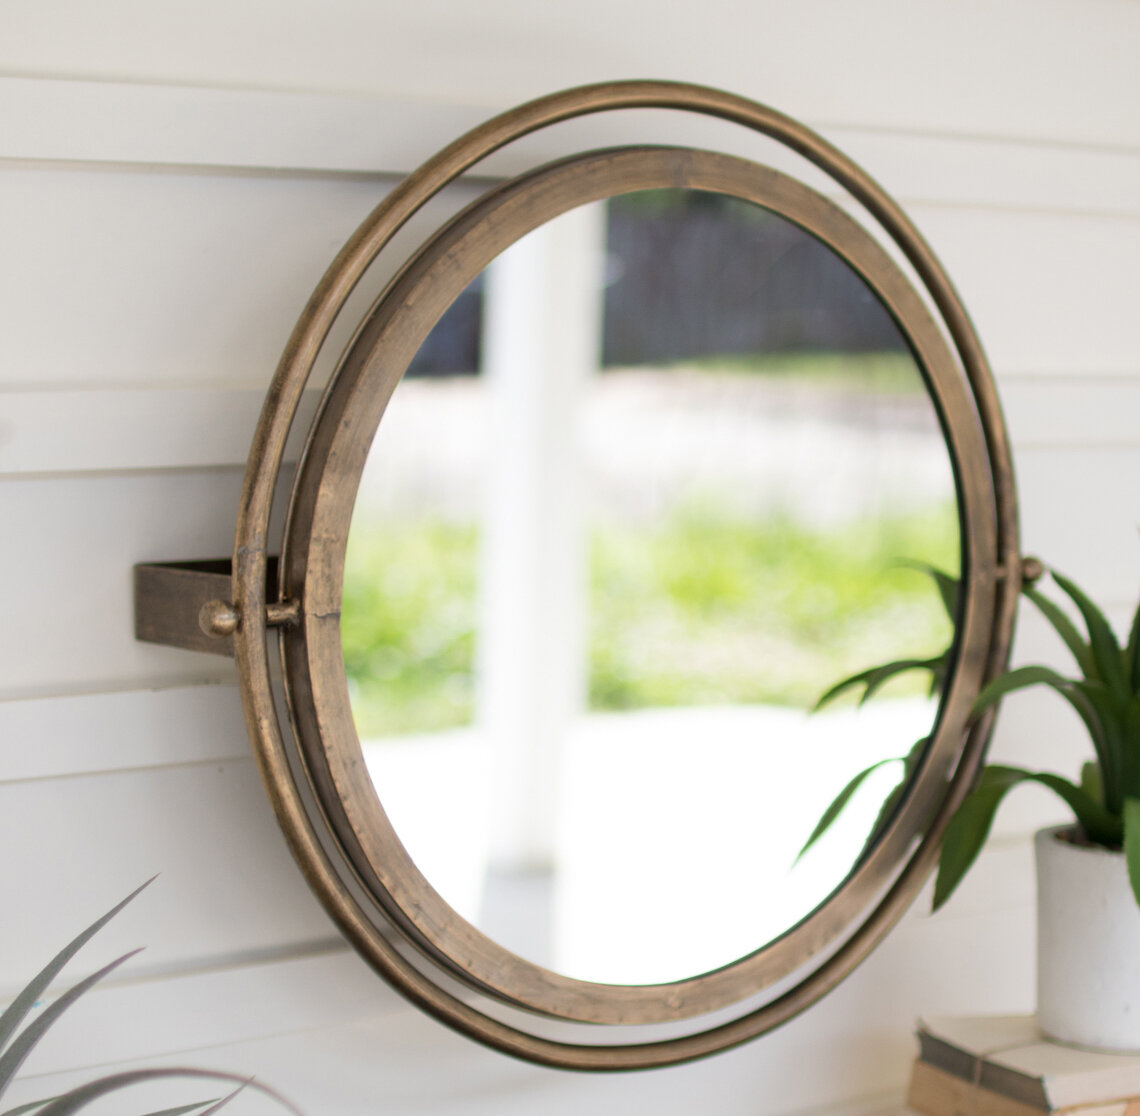 Delicieux Acushnet Wall Adjustable Accent Mirror